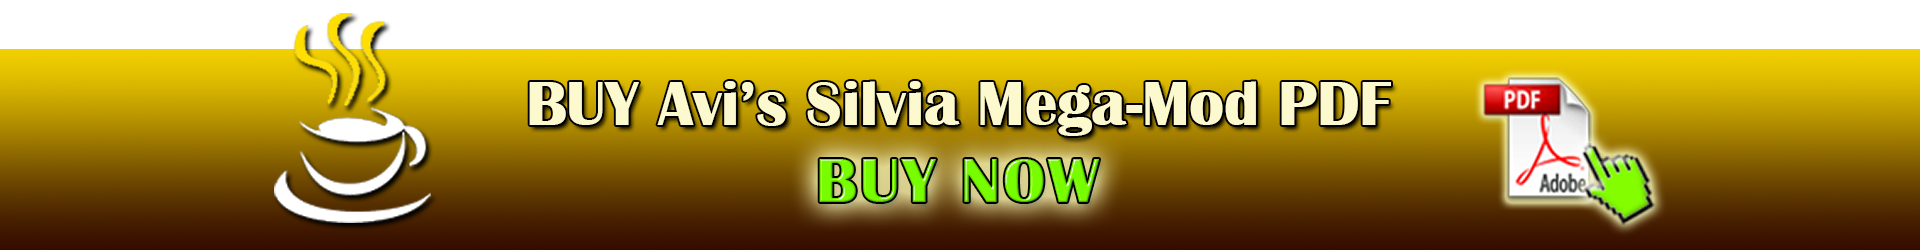 Silvia Mega-Mod Buy Now banner